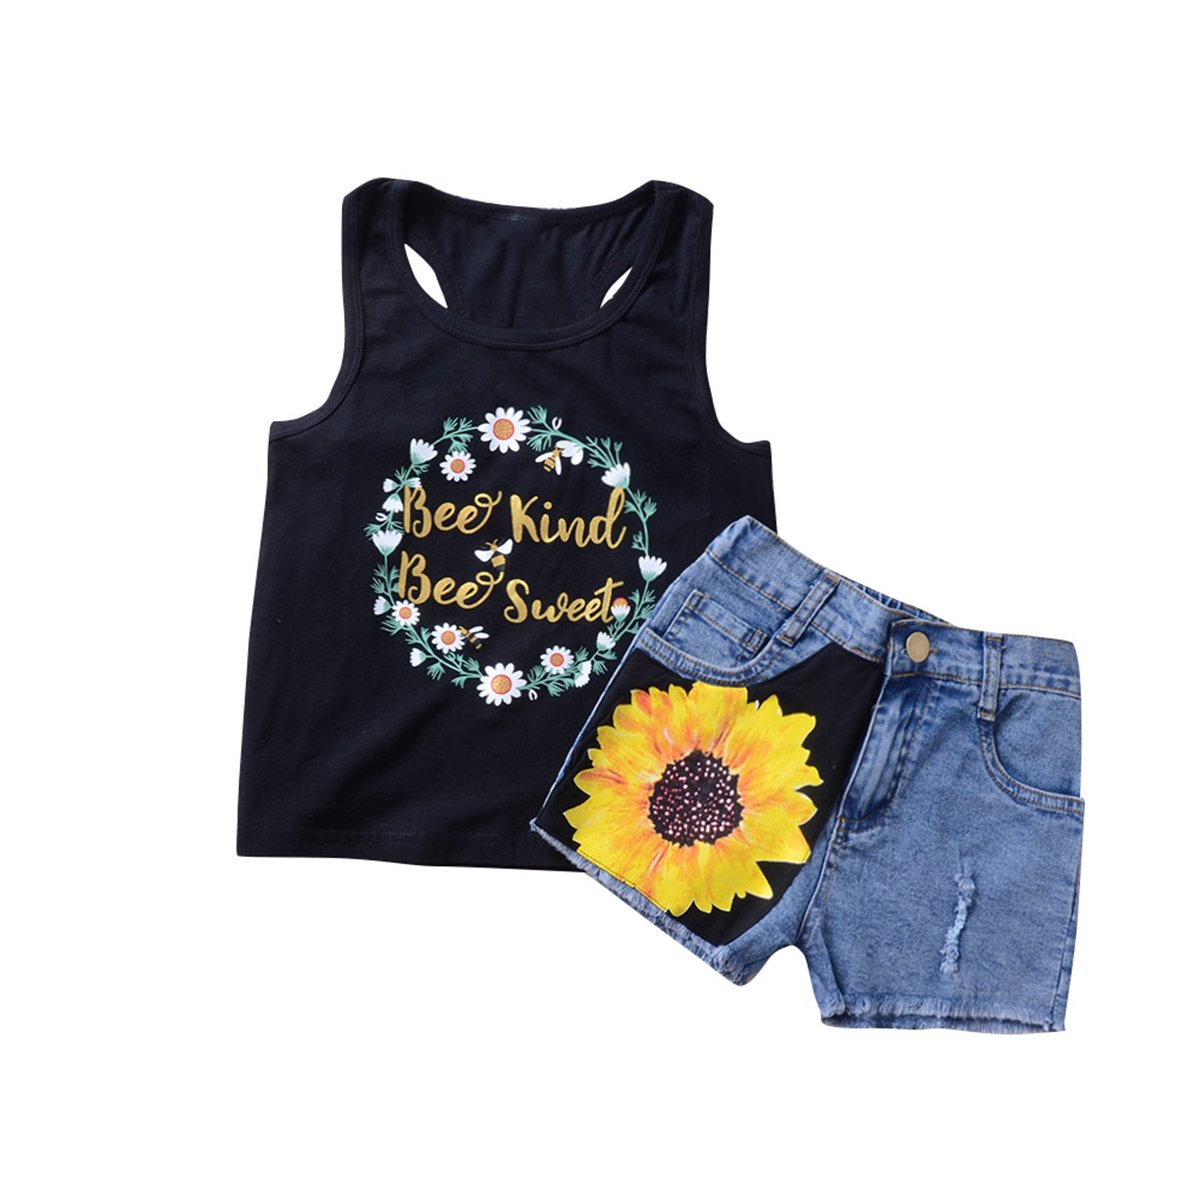 Camidy 2 Style Toddler Girl Sleeveless Vest Tops +Floral Denim Shorts Outfits Set